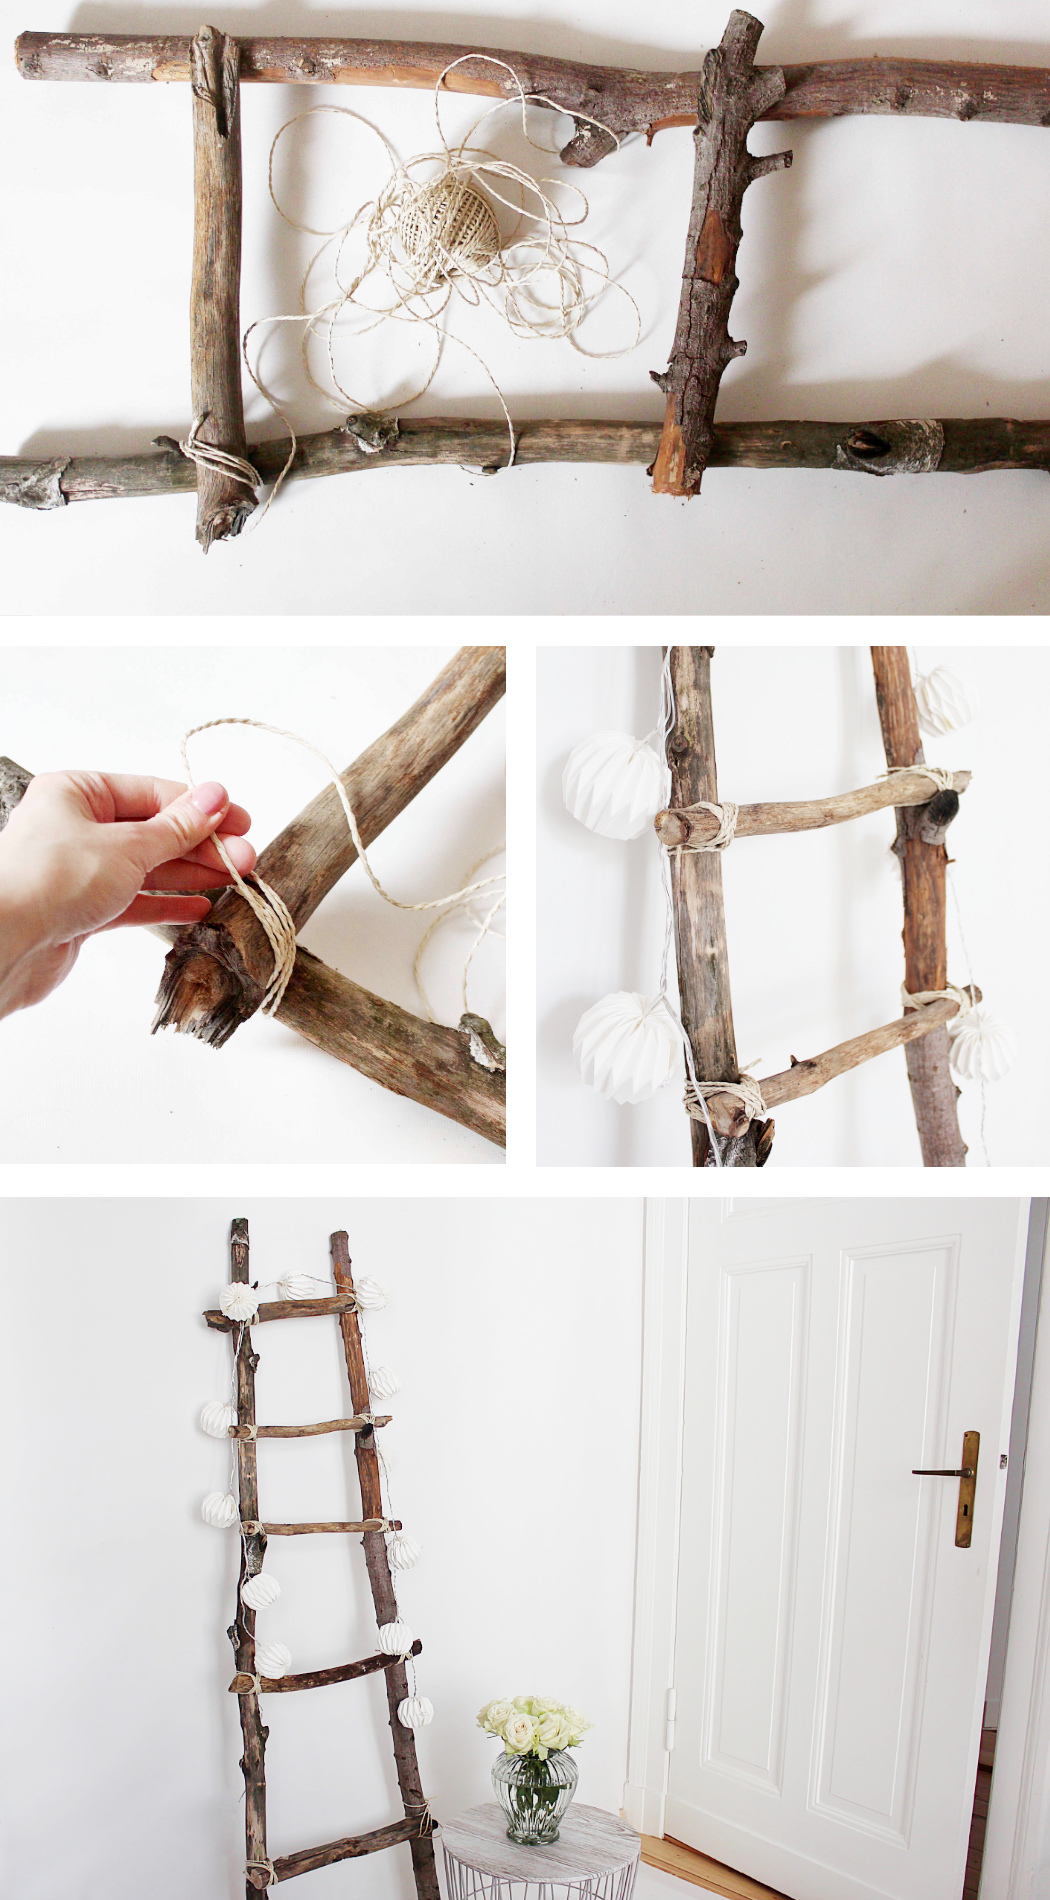 Decoration ladder DIY Tutorial